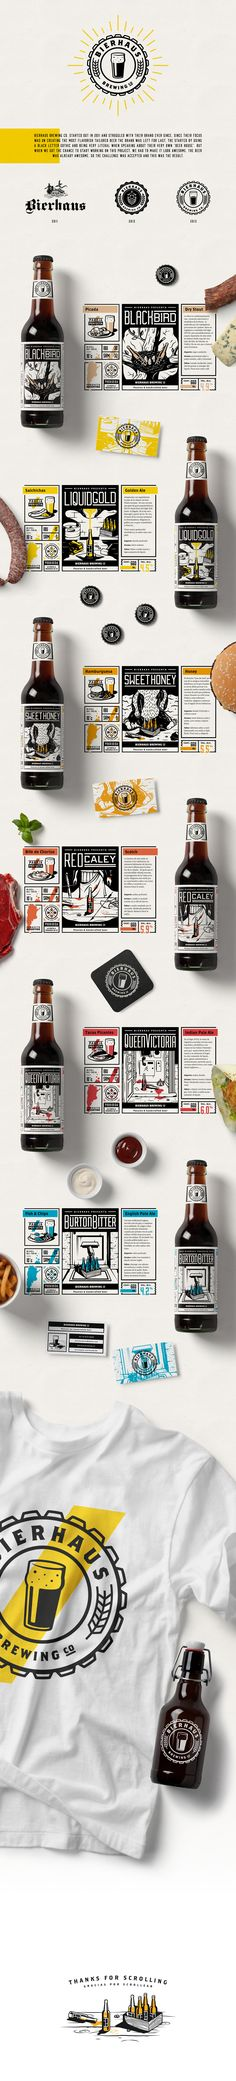 Bierhaus behance Branding | Graphic Design |